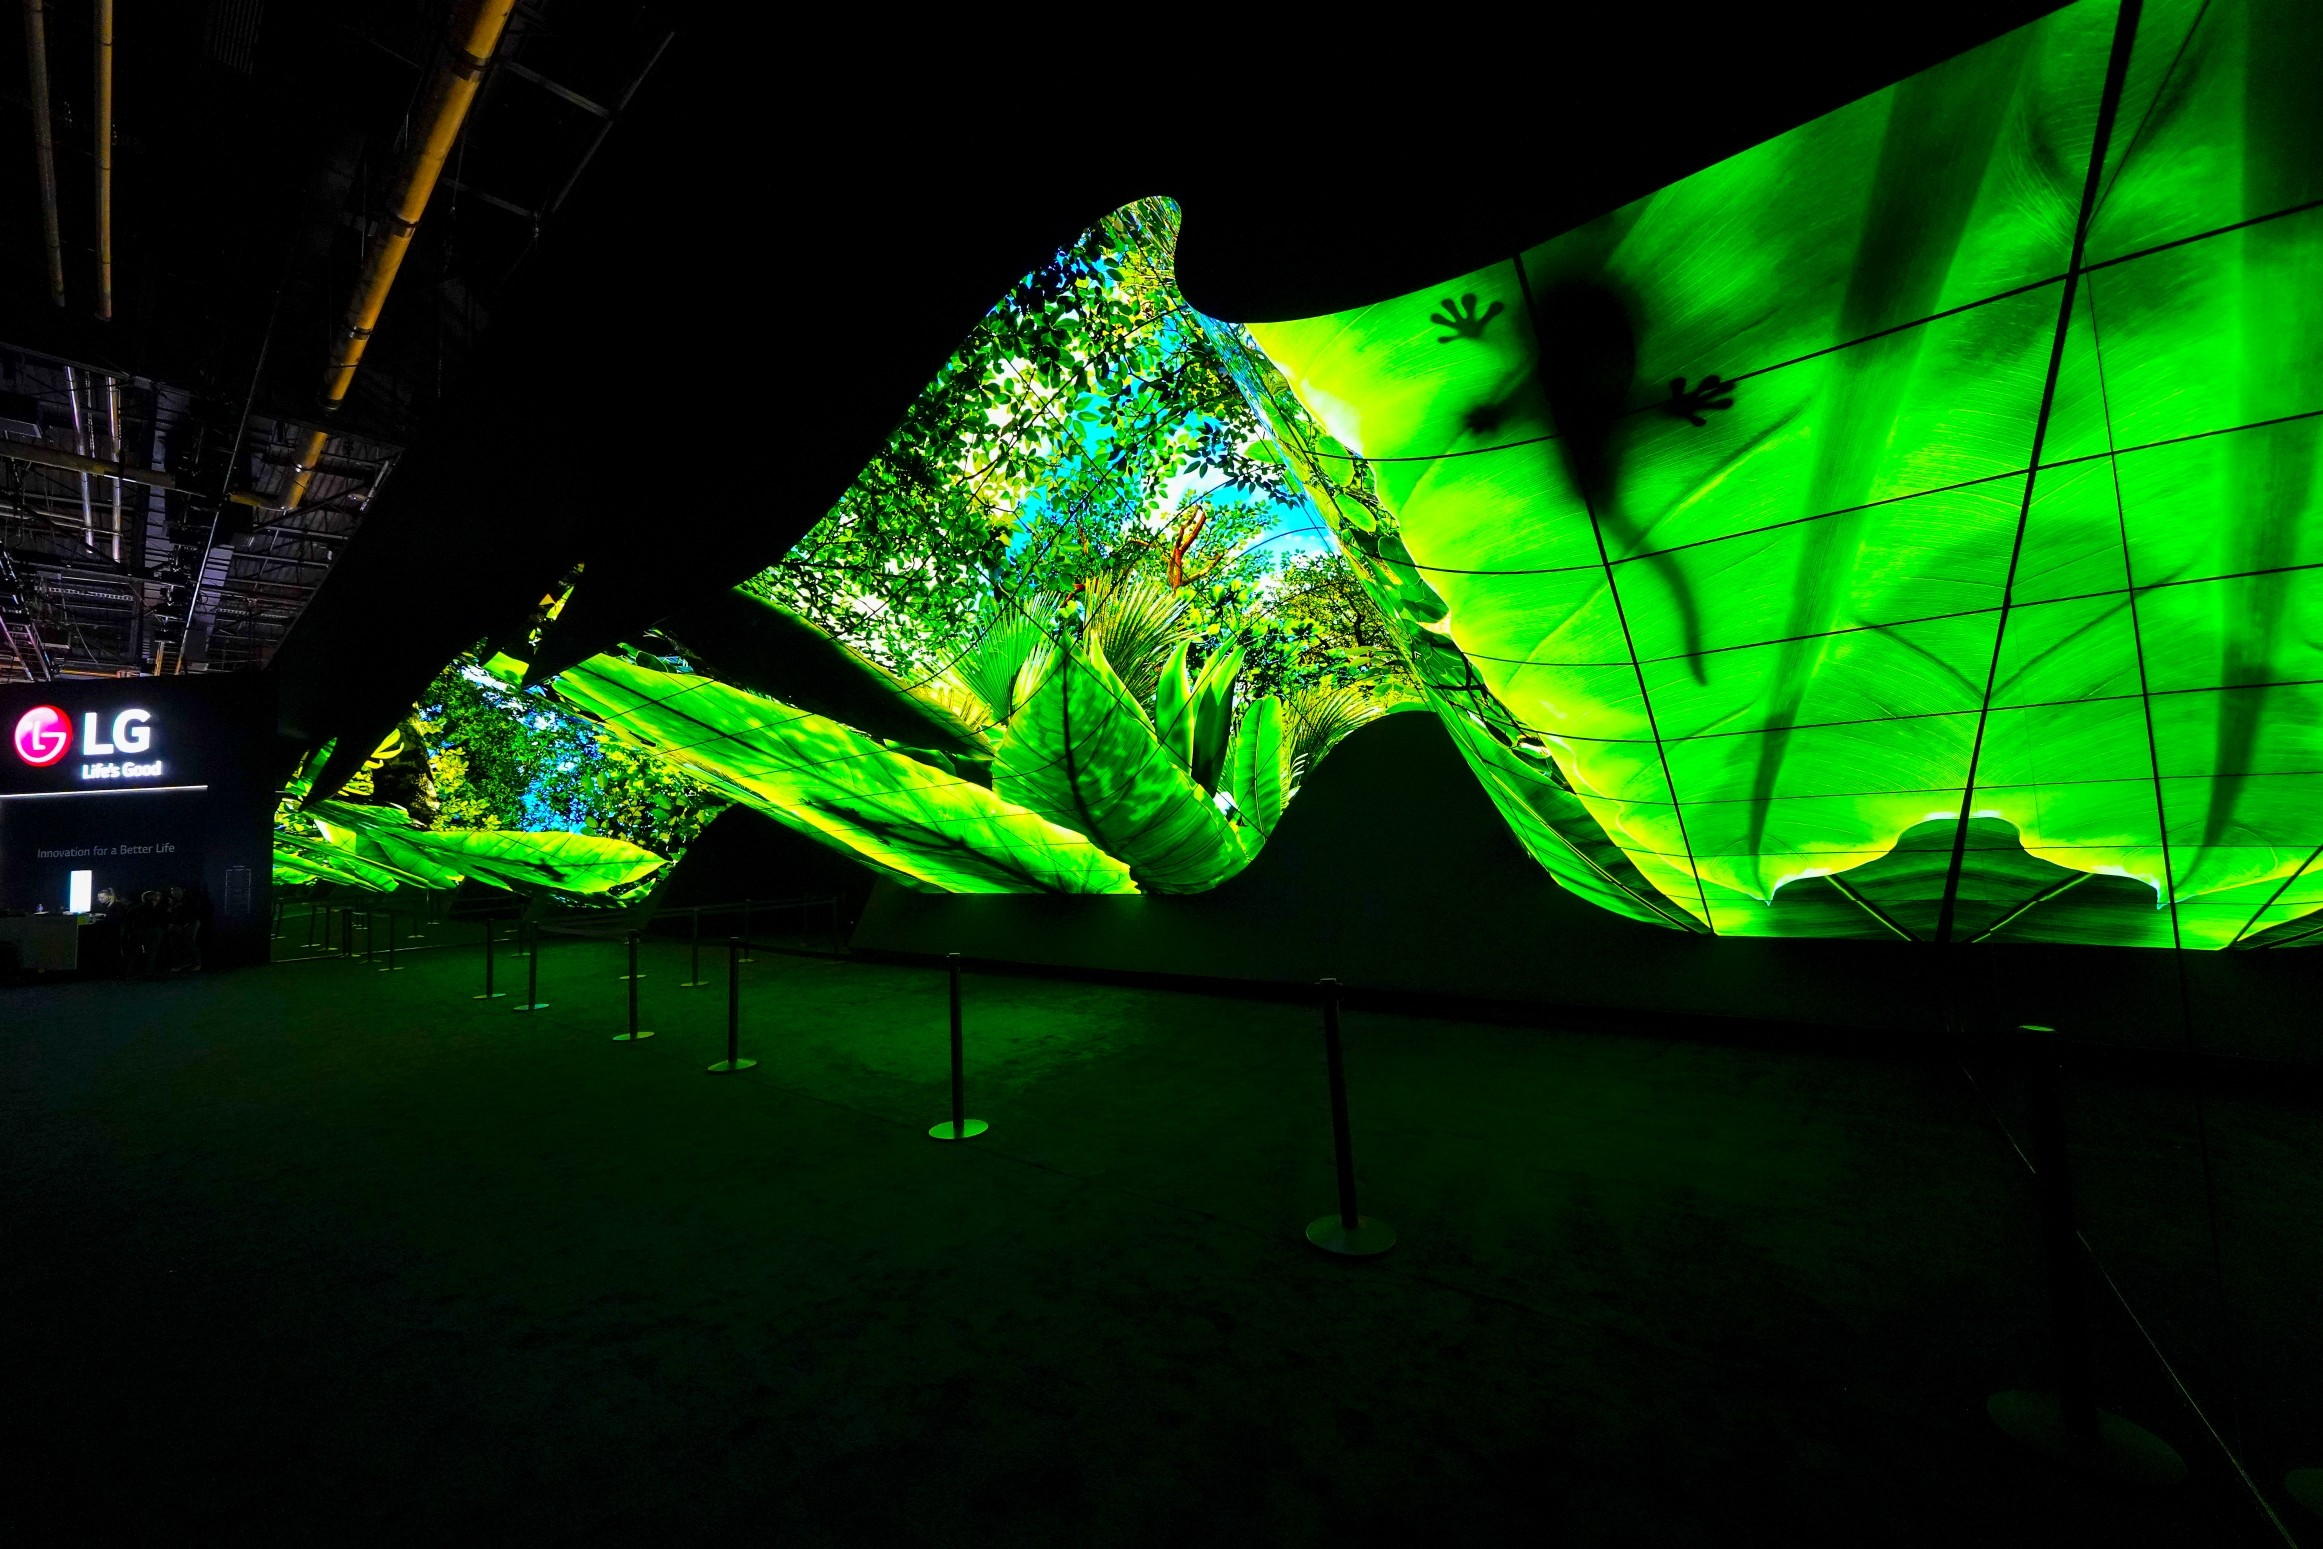 A view-angle view of LG OLED Wave as it delivers the vibrant natural colors of a rainforest at CES 2020